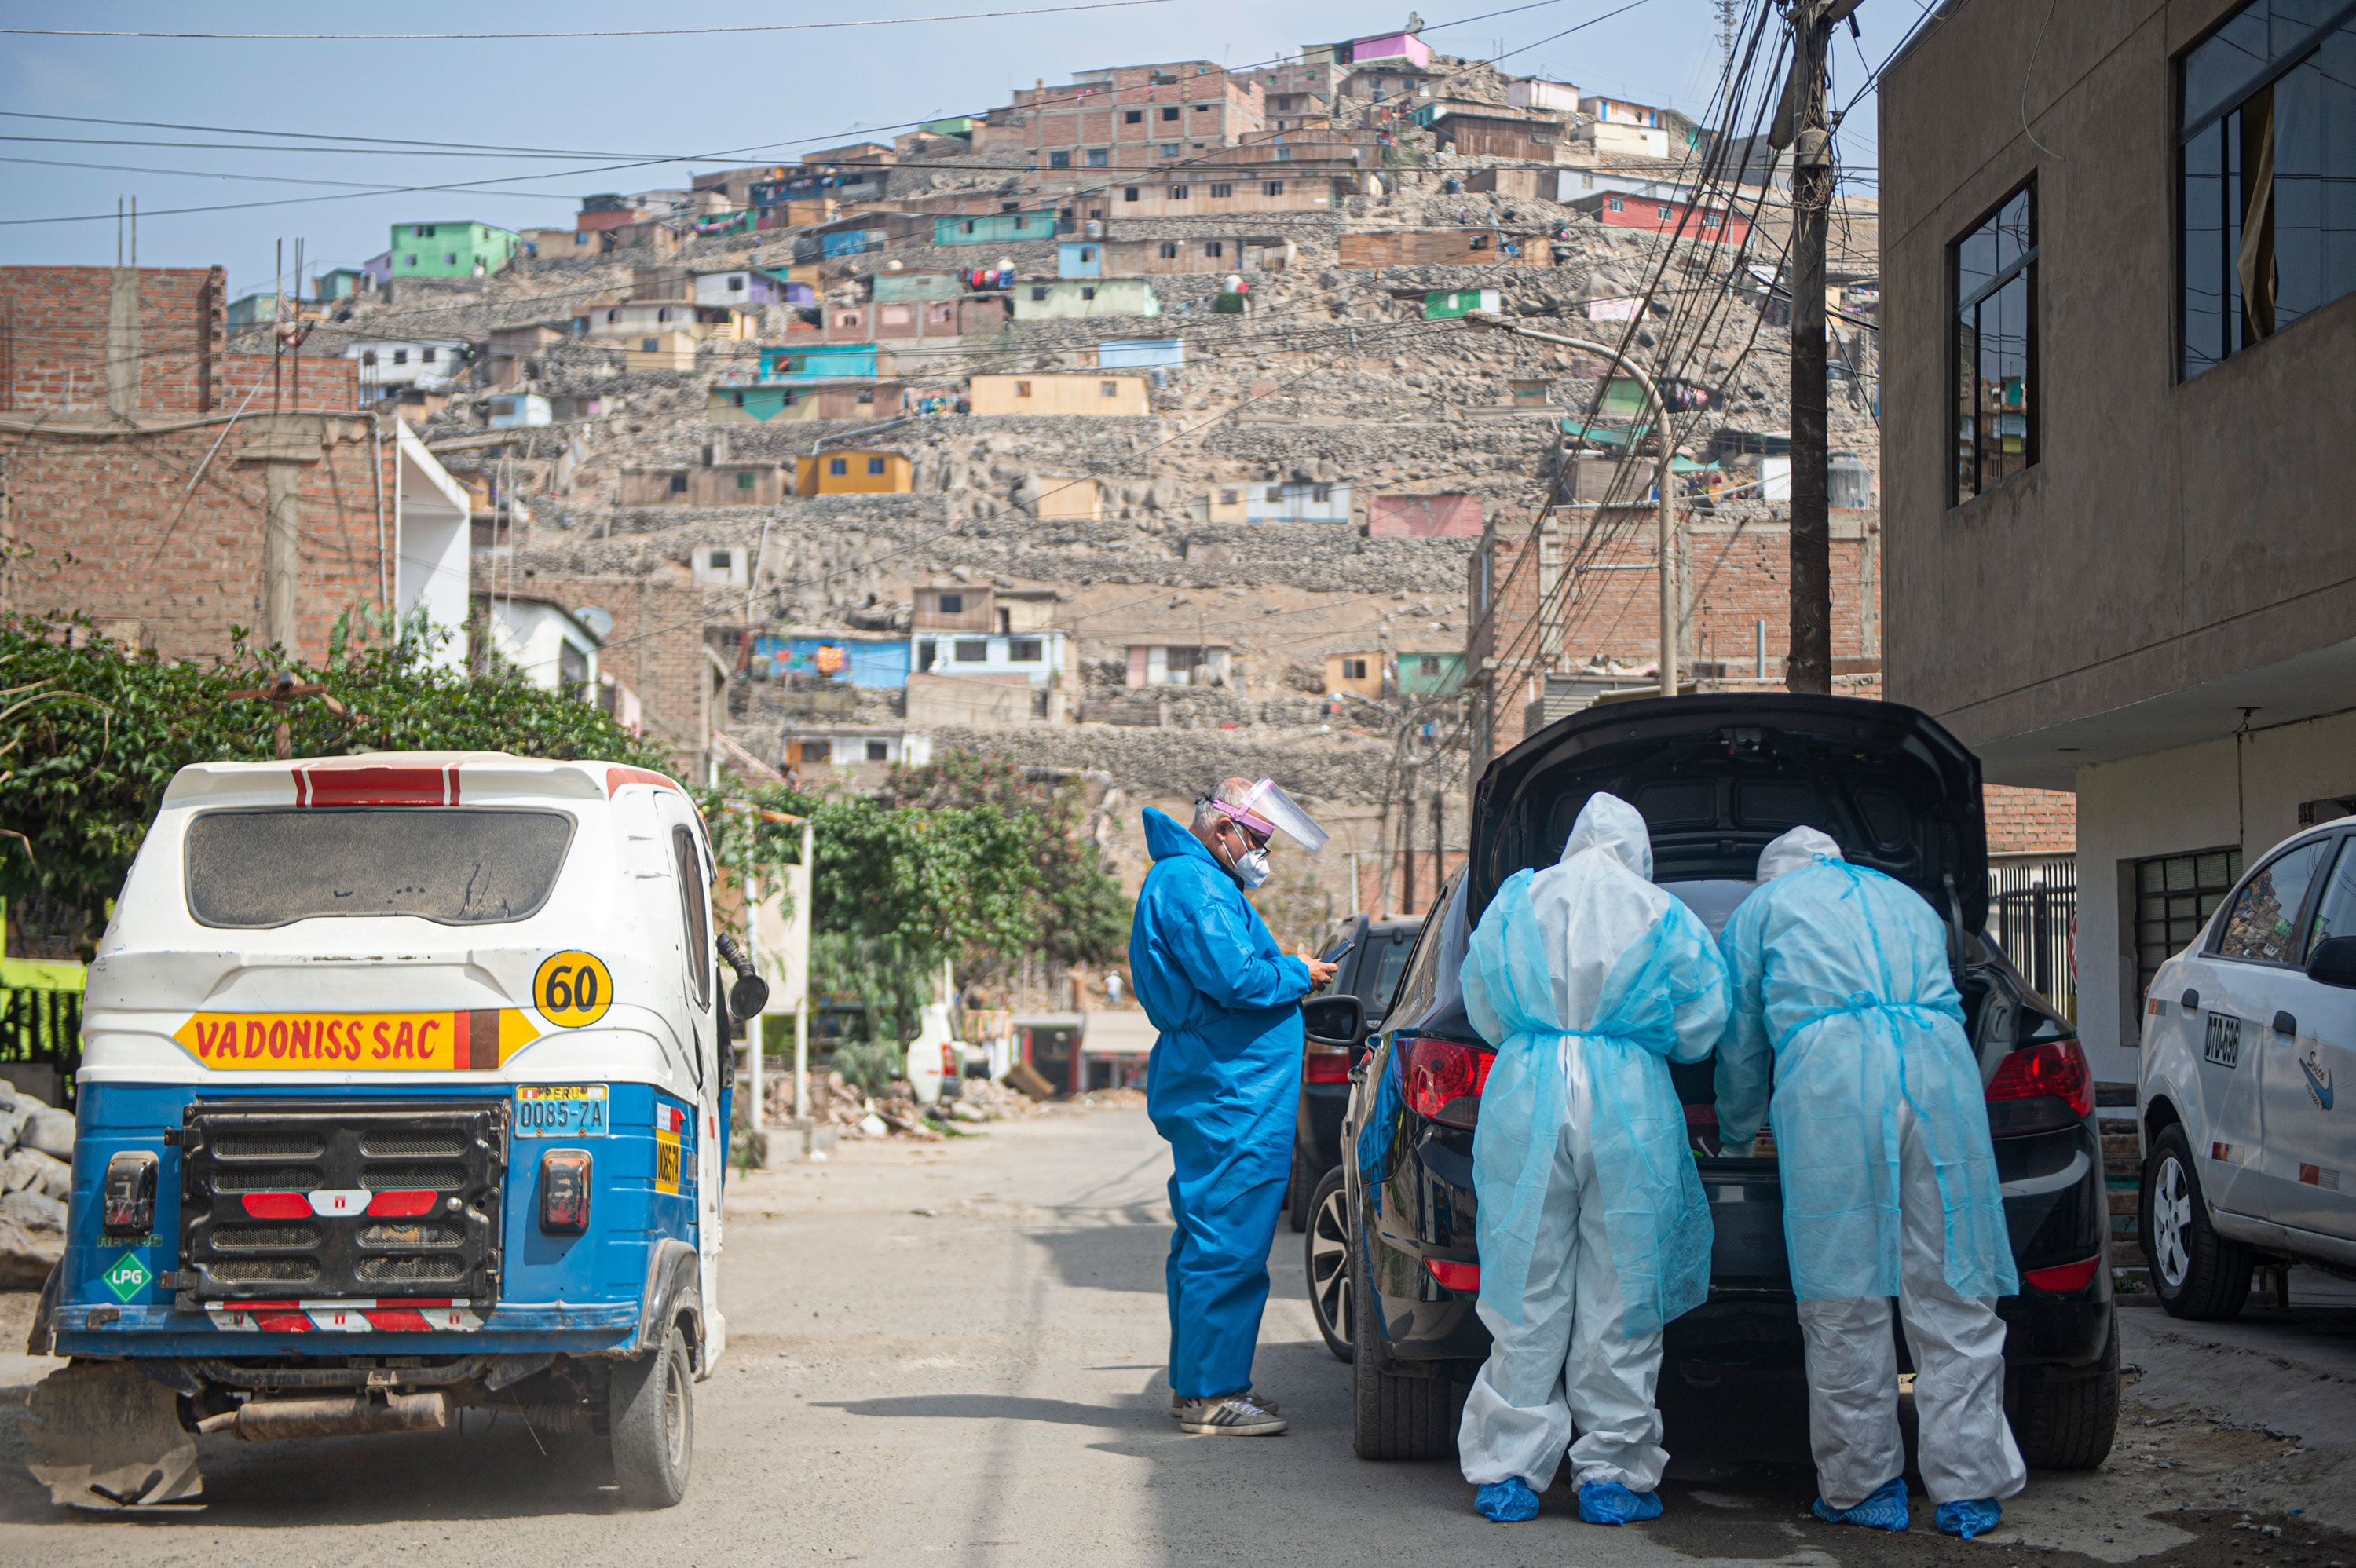 Doctors prepare to visit a coronavirus patient on the outskirts of Lima, Peru, on June 11.